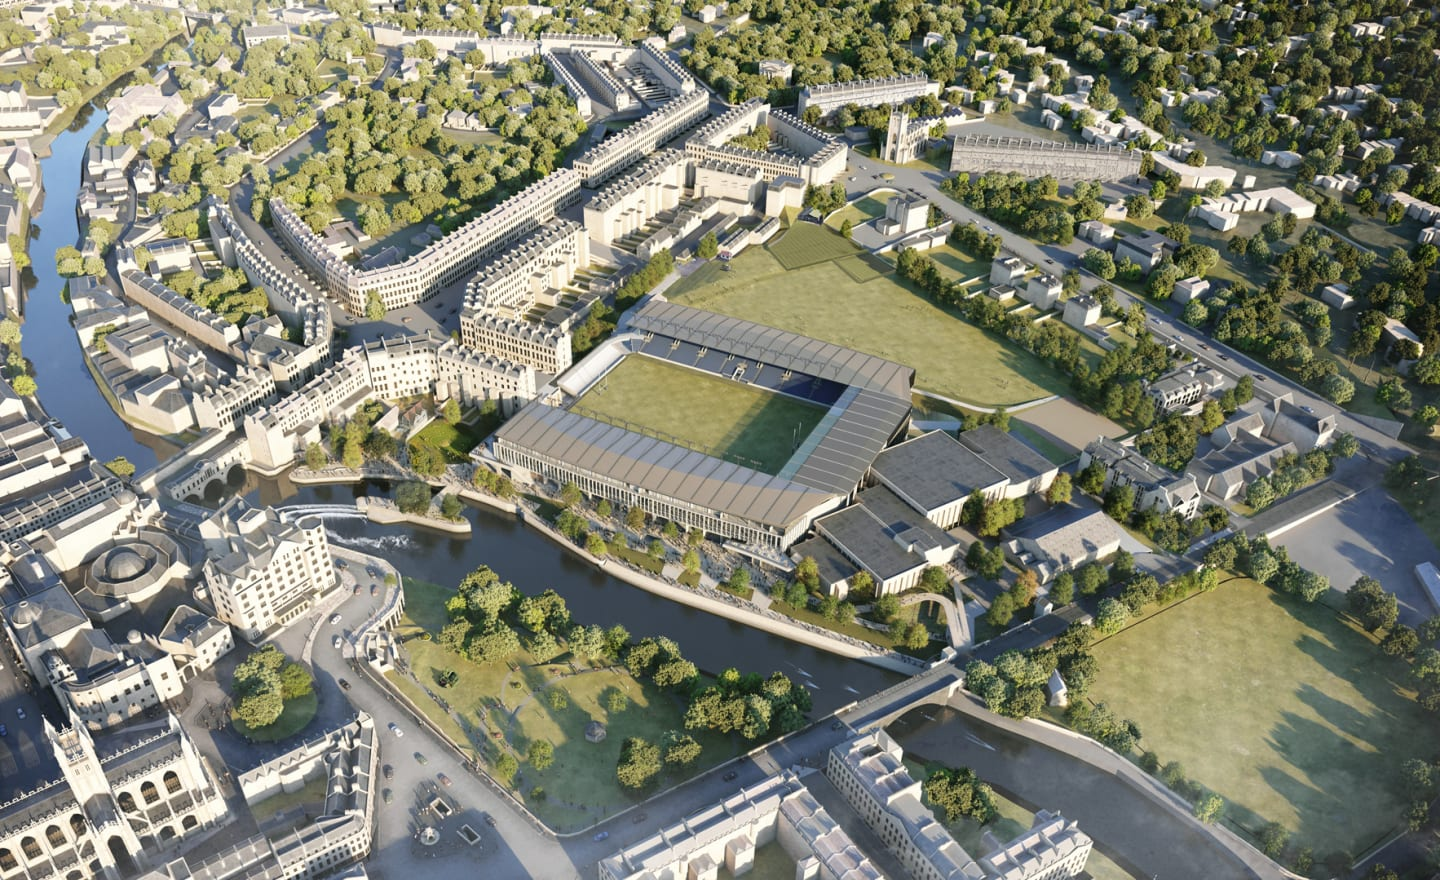 Final Stadium for Bath consultation launched